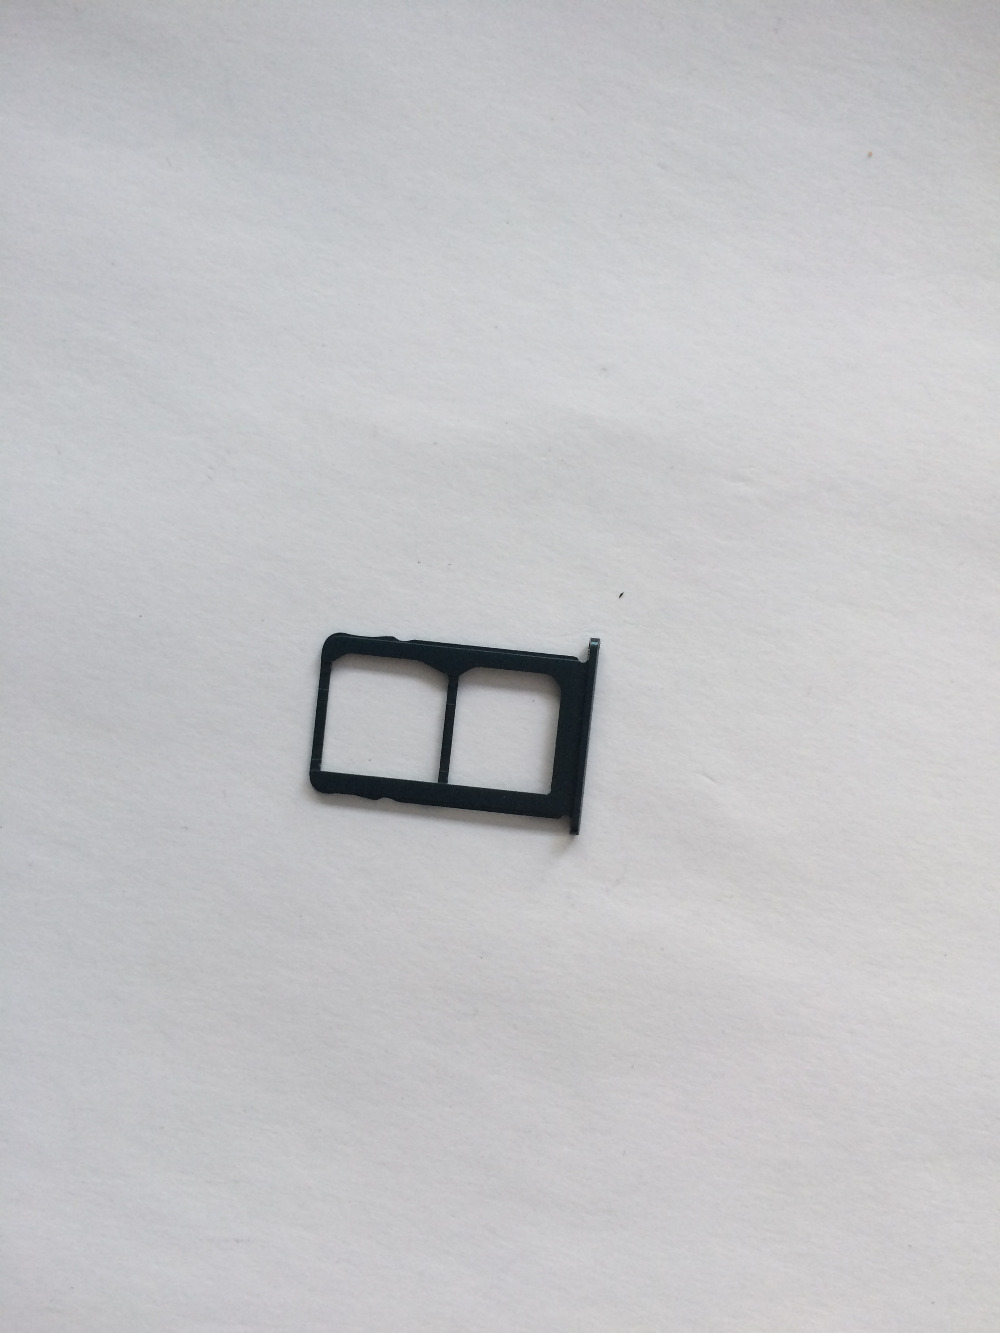 Used Sim Card Holder Tray Card Slot repair parts for Umi fair Free shipping+Tracking Code